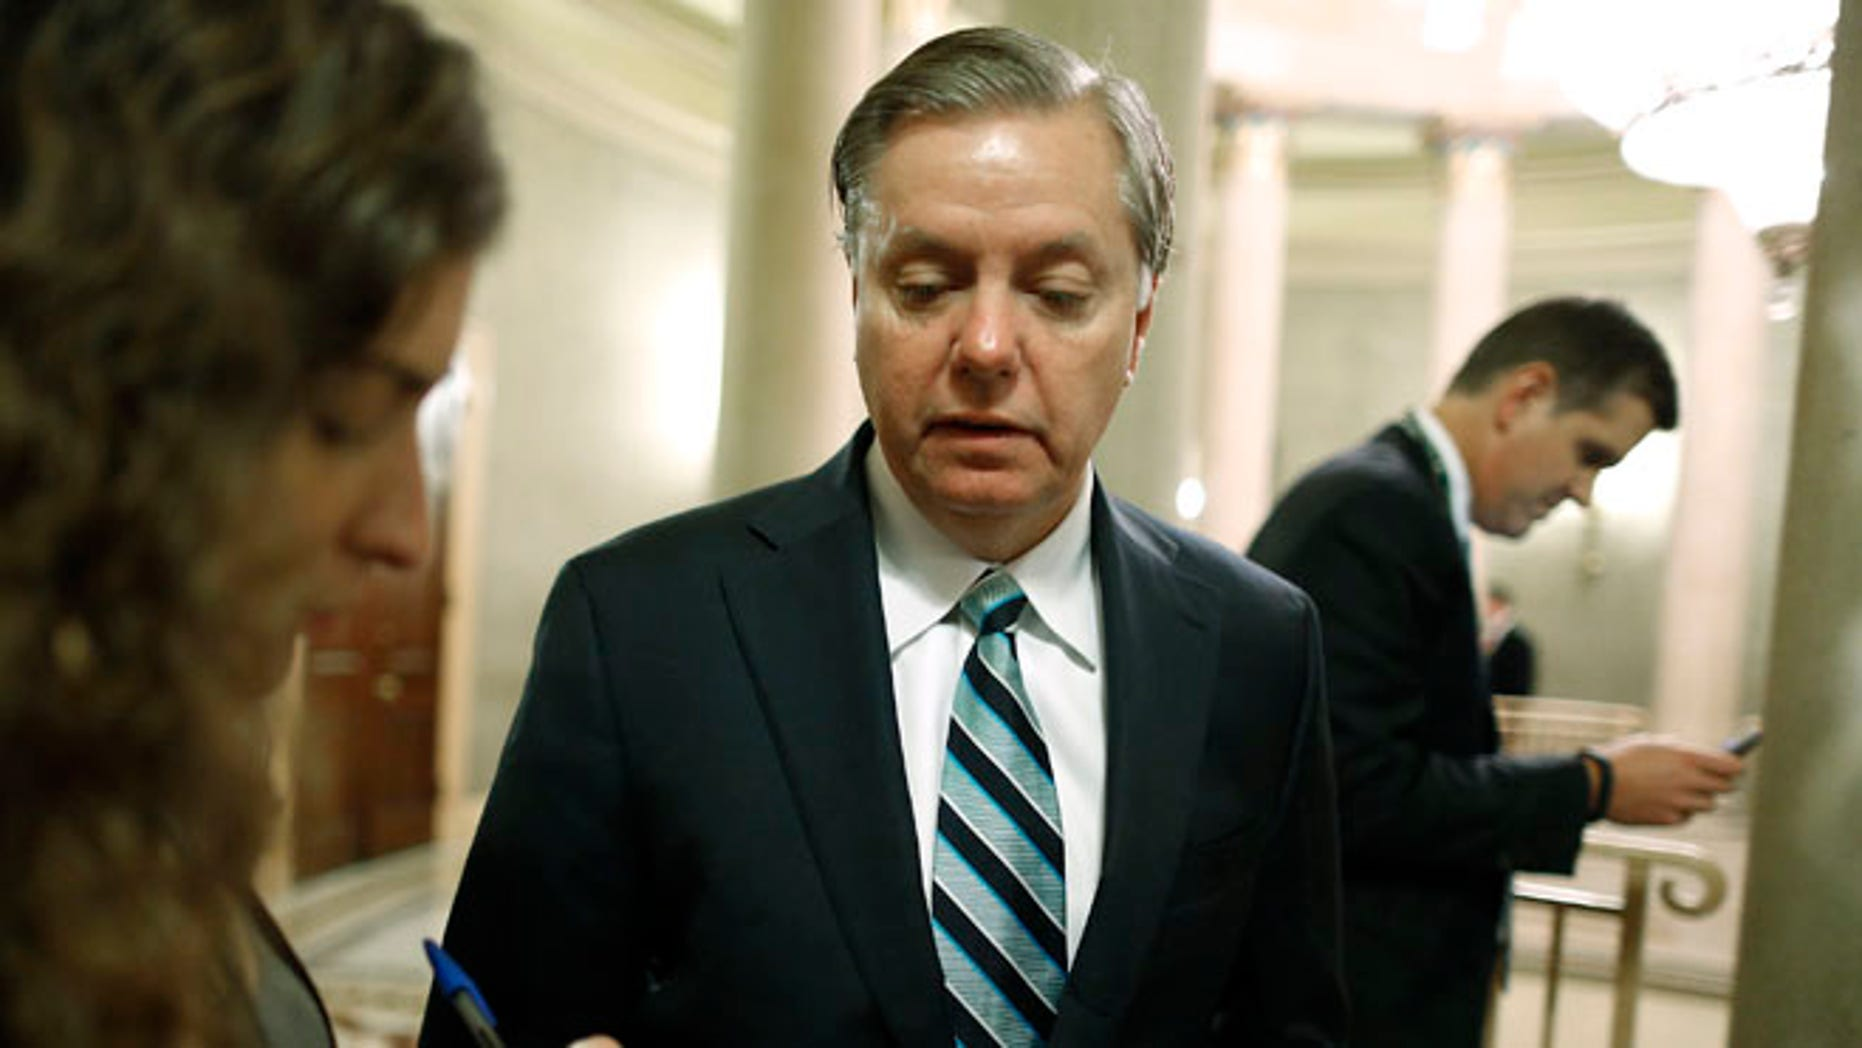 Oct. 16, 2013: Sen. Lindsey Graham, R-S.C., speaks to a reporter on Capitol Hill.